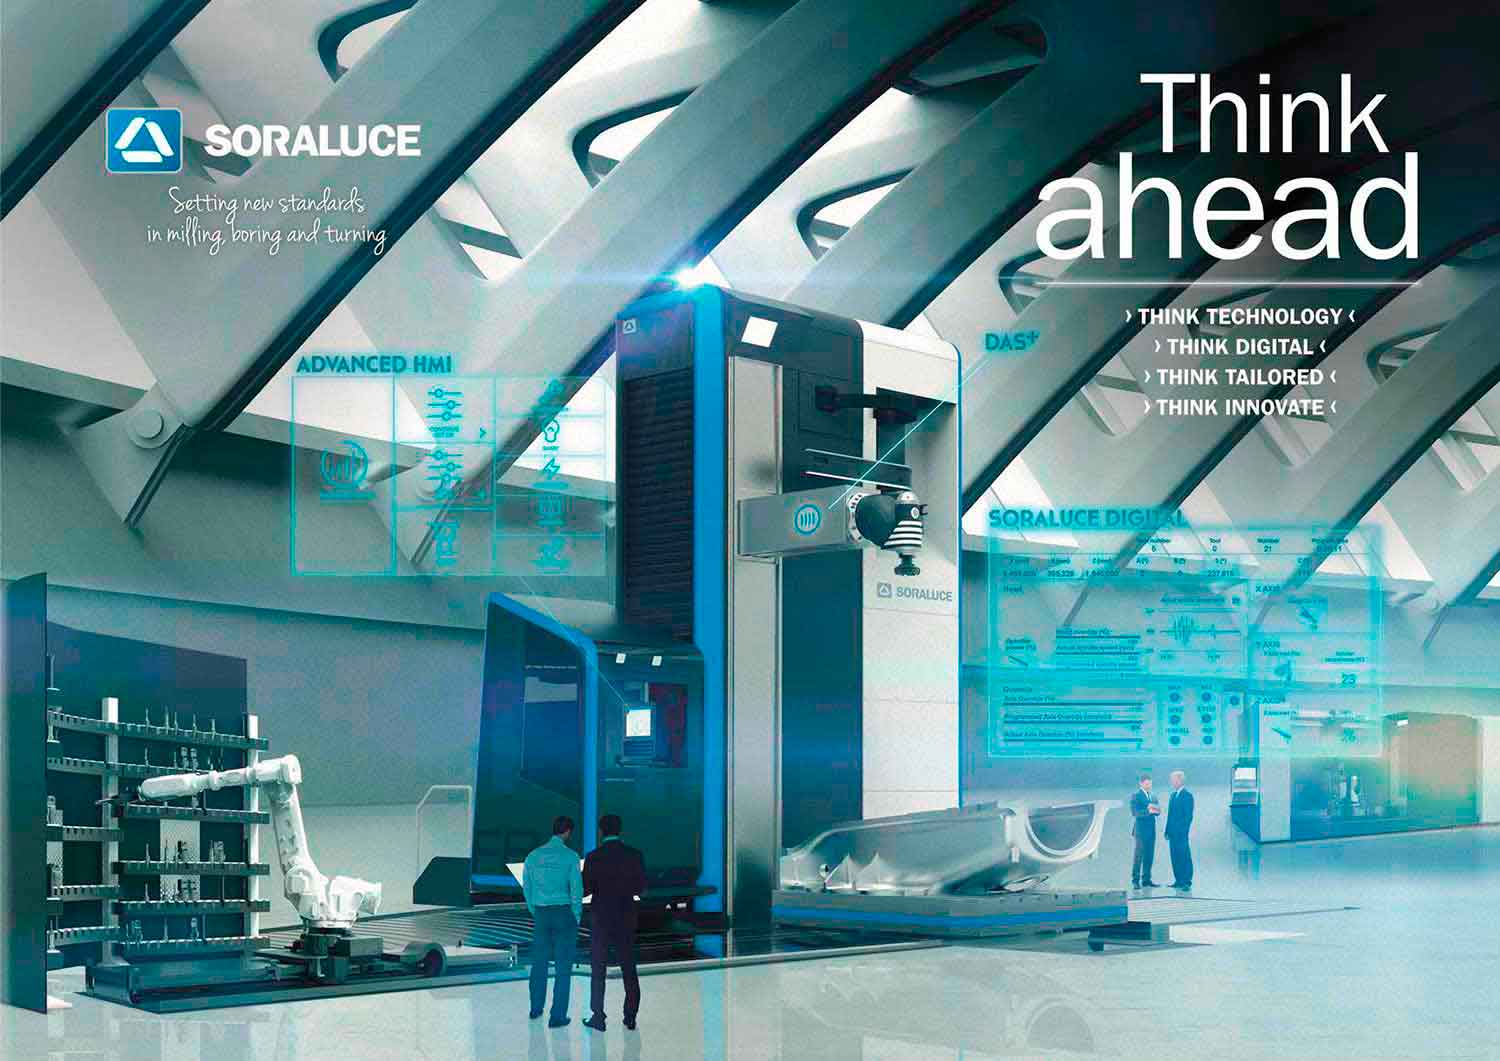 SORALUCE thinks ahead to digital environments in milling, boring and turning